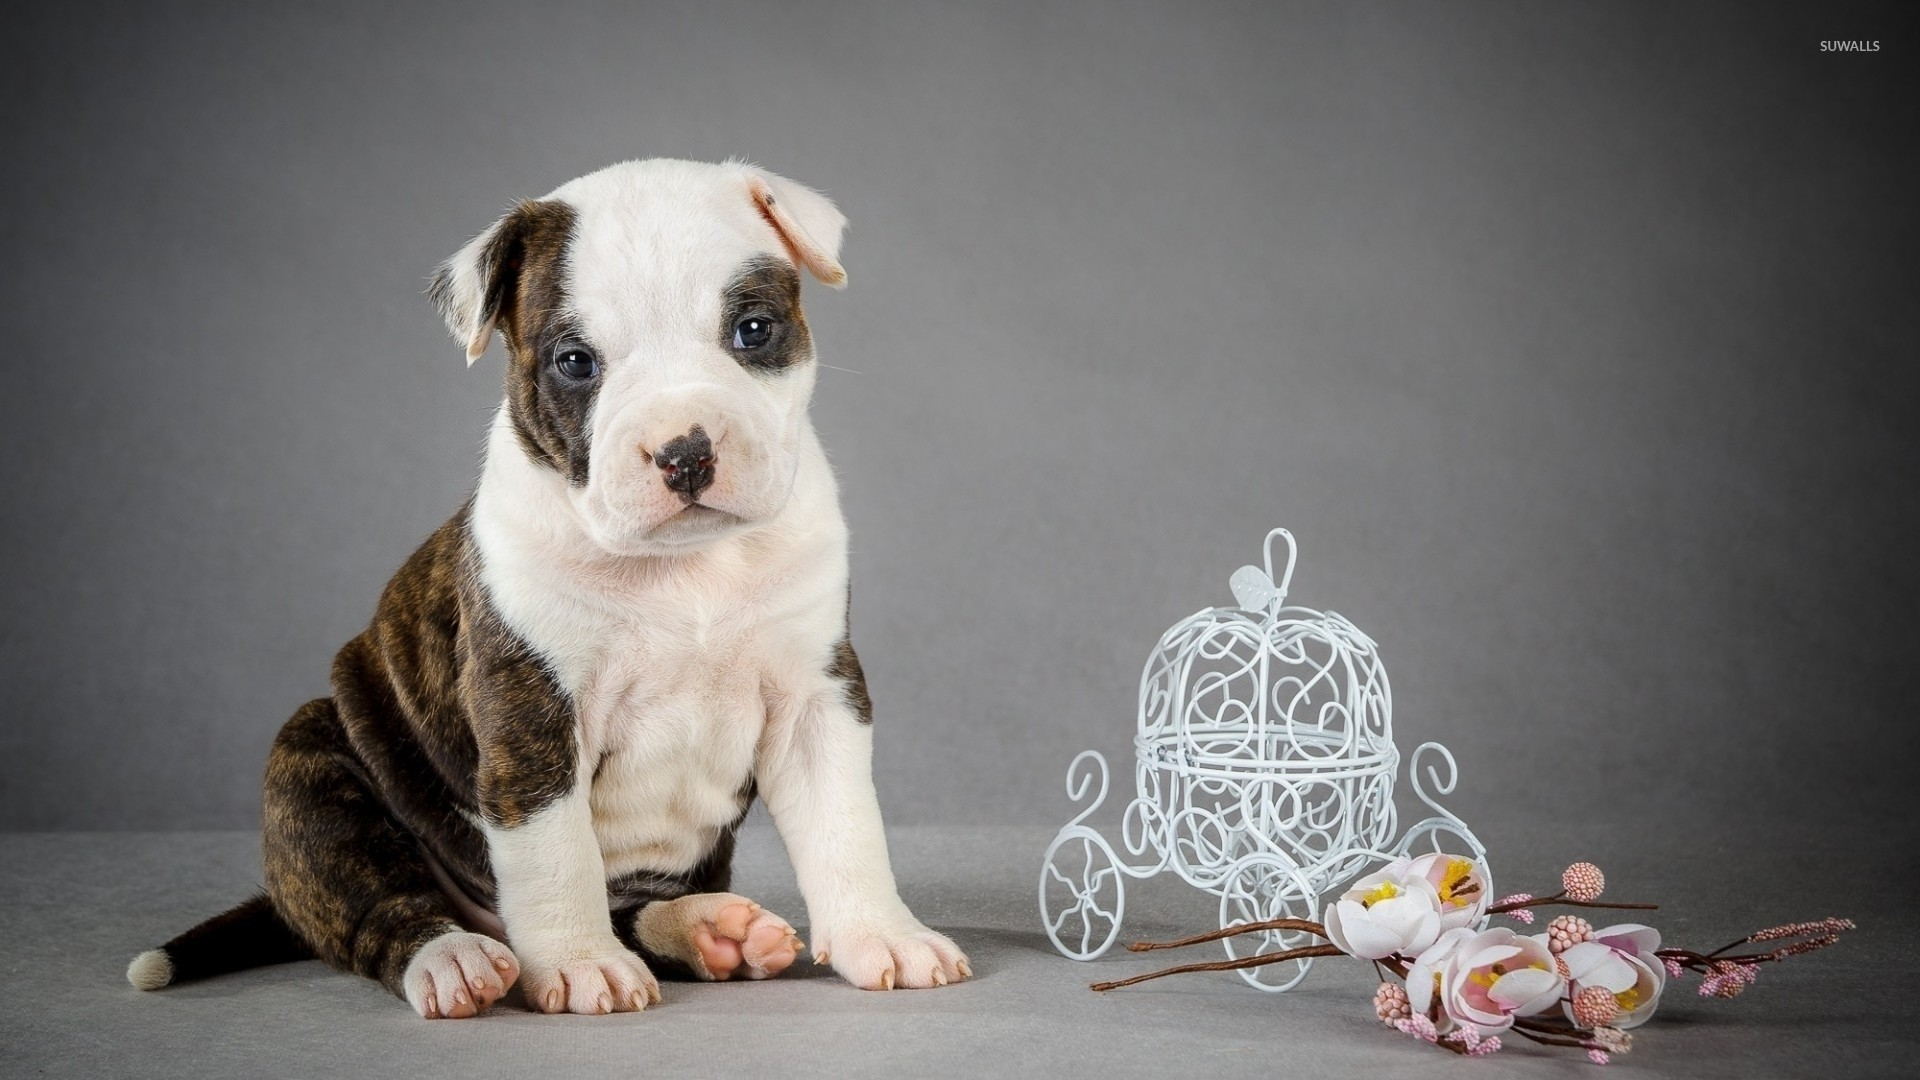 pitbull puppy wallpapers high quality resolution with high resolution  wallpaper on animal category similar with black